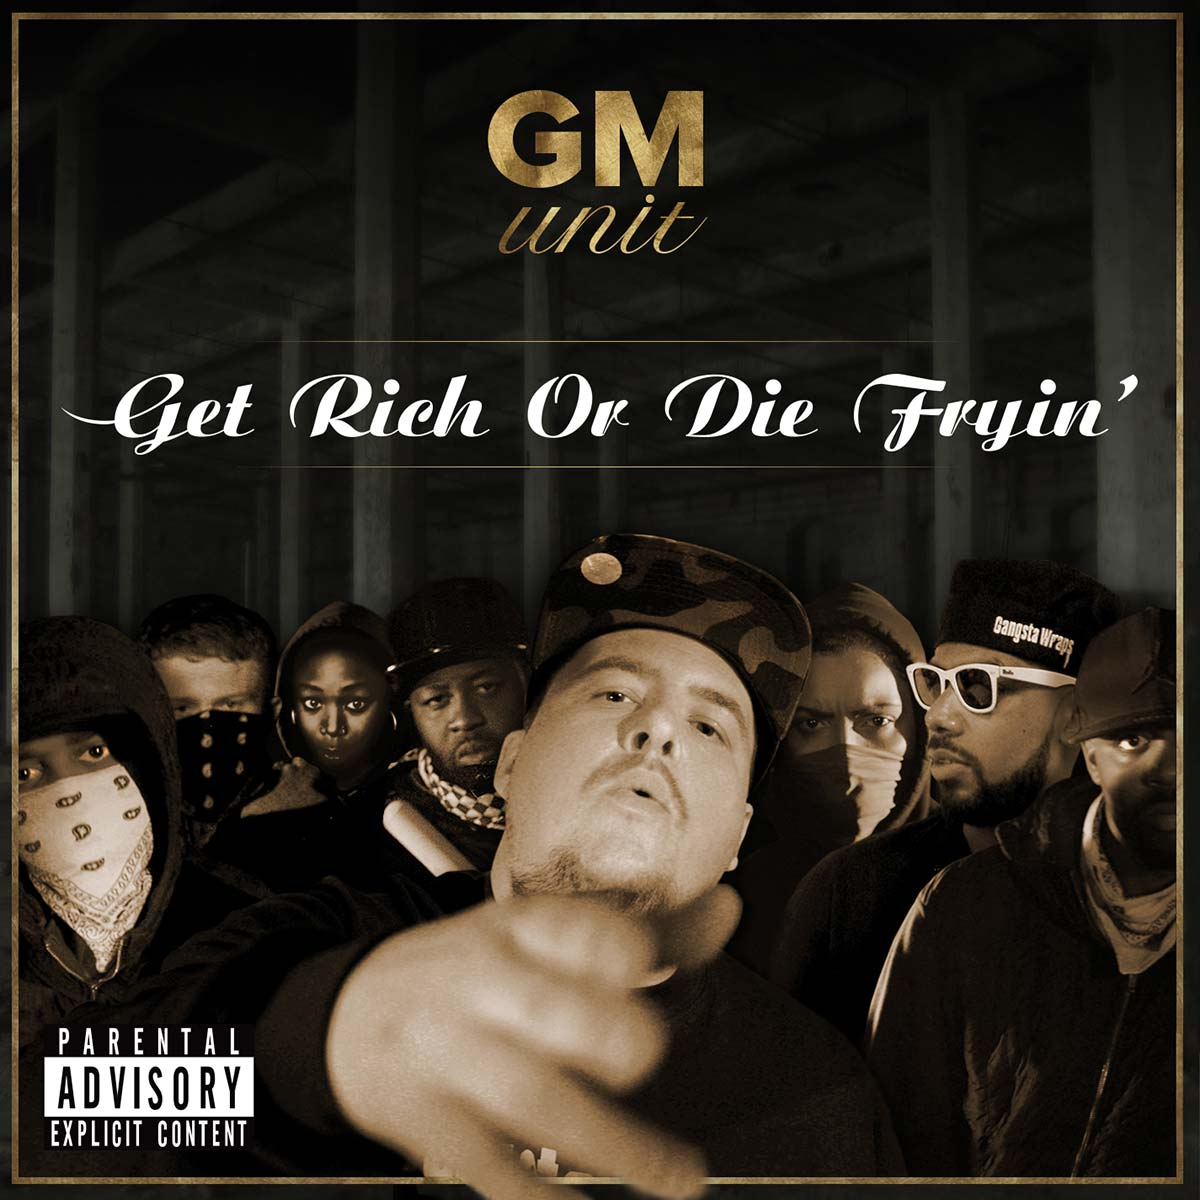 Free Get Rich or Die Fryin Mixtape with orders